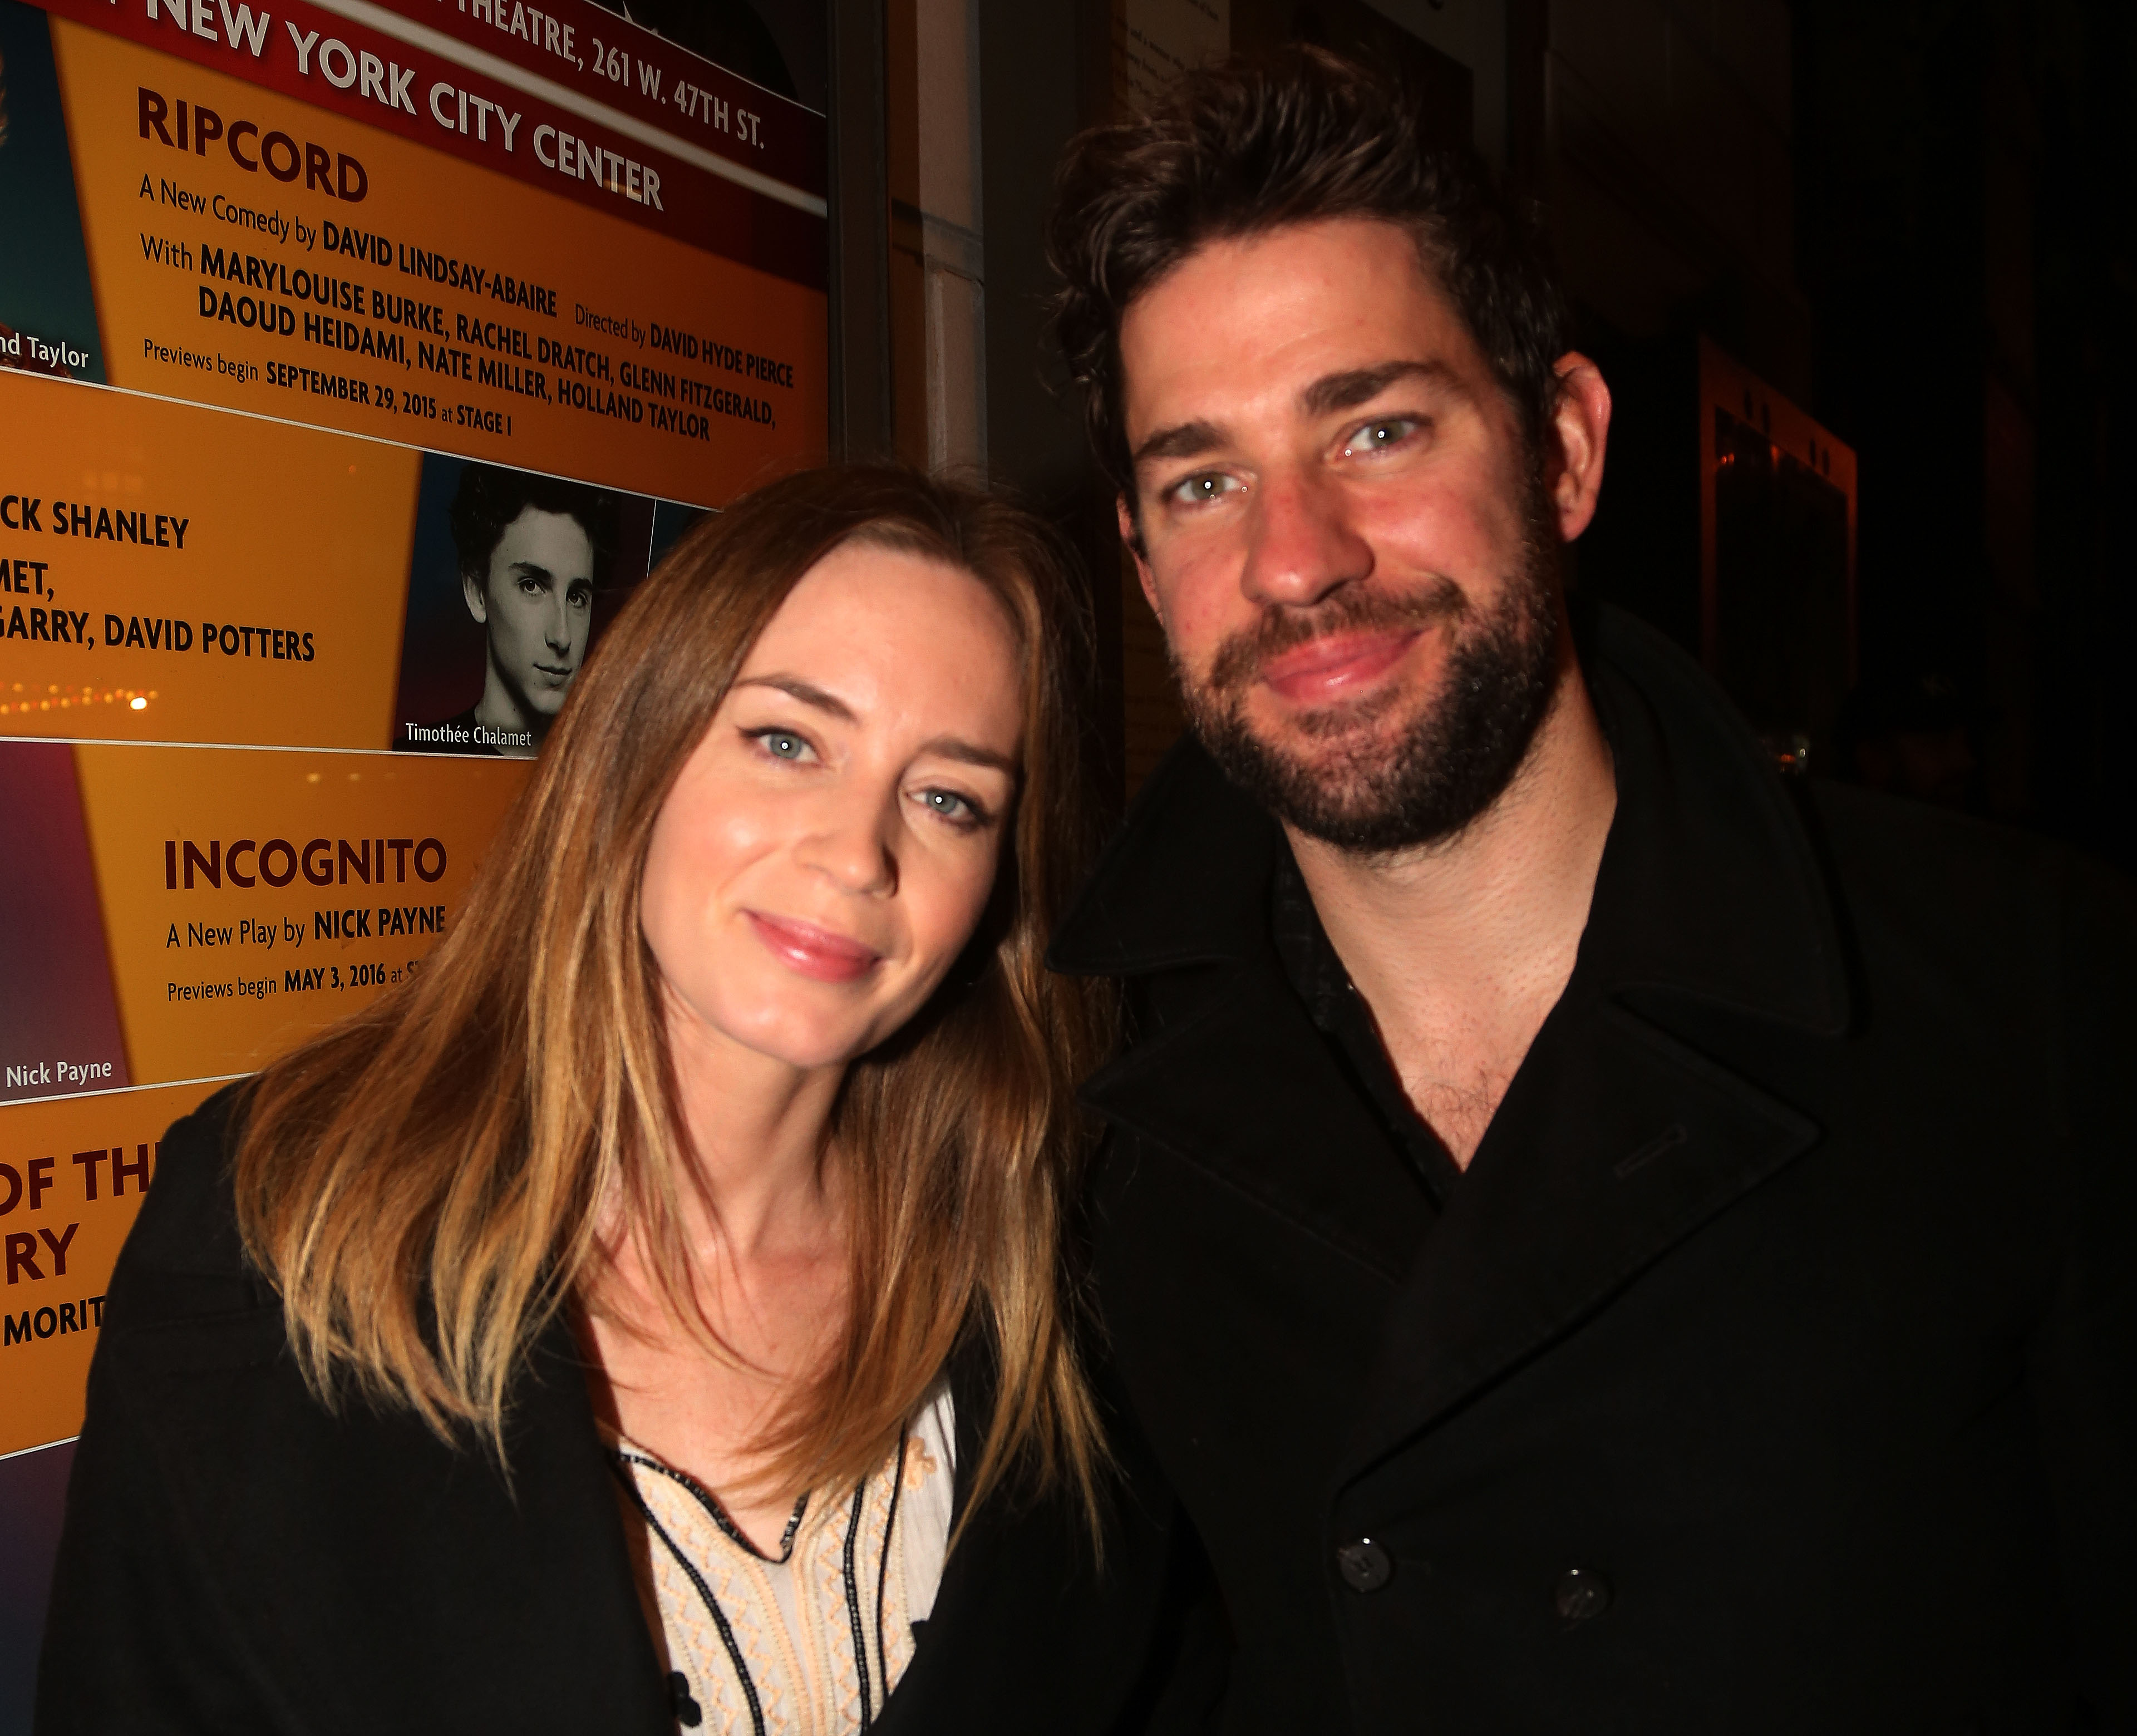 Emily Blunt and John Krasinski make first red carpet appearance after welcoming daughter Violet, and they're glowing!